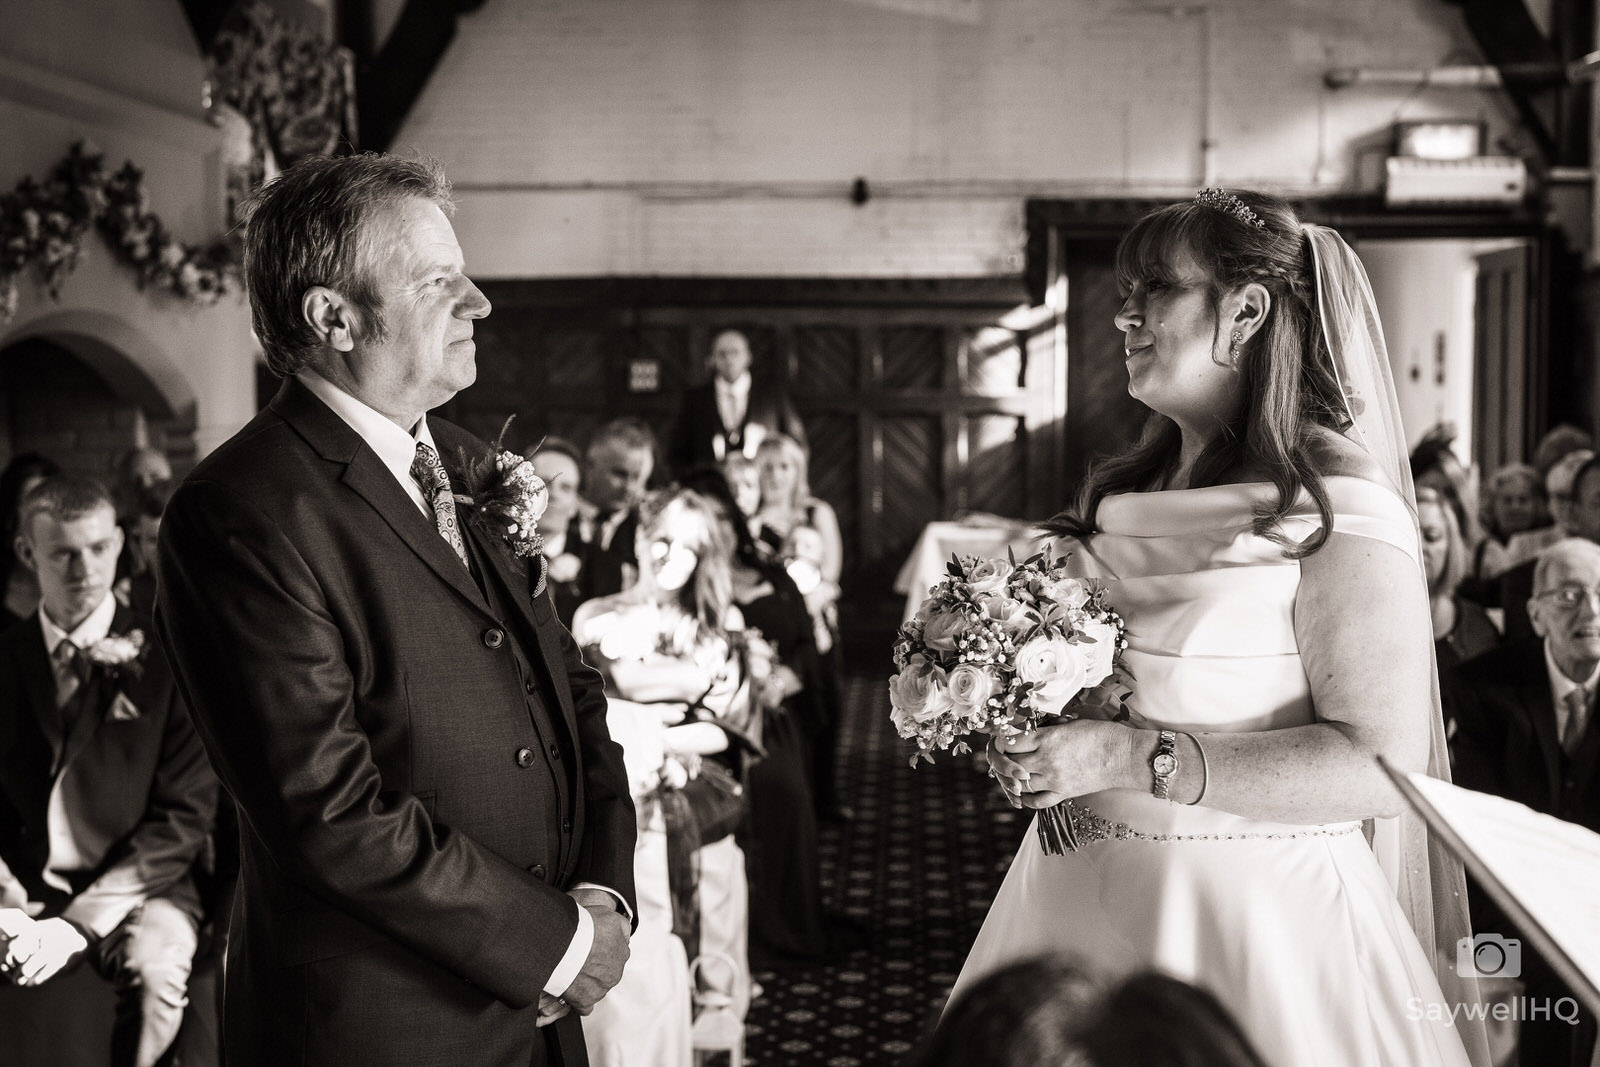 Wedding Photography at Bestwood Lodge – bride and groom looking at each other during the wedding ceremony